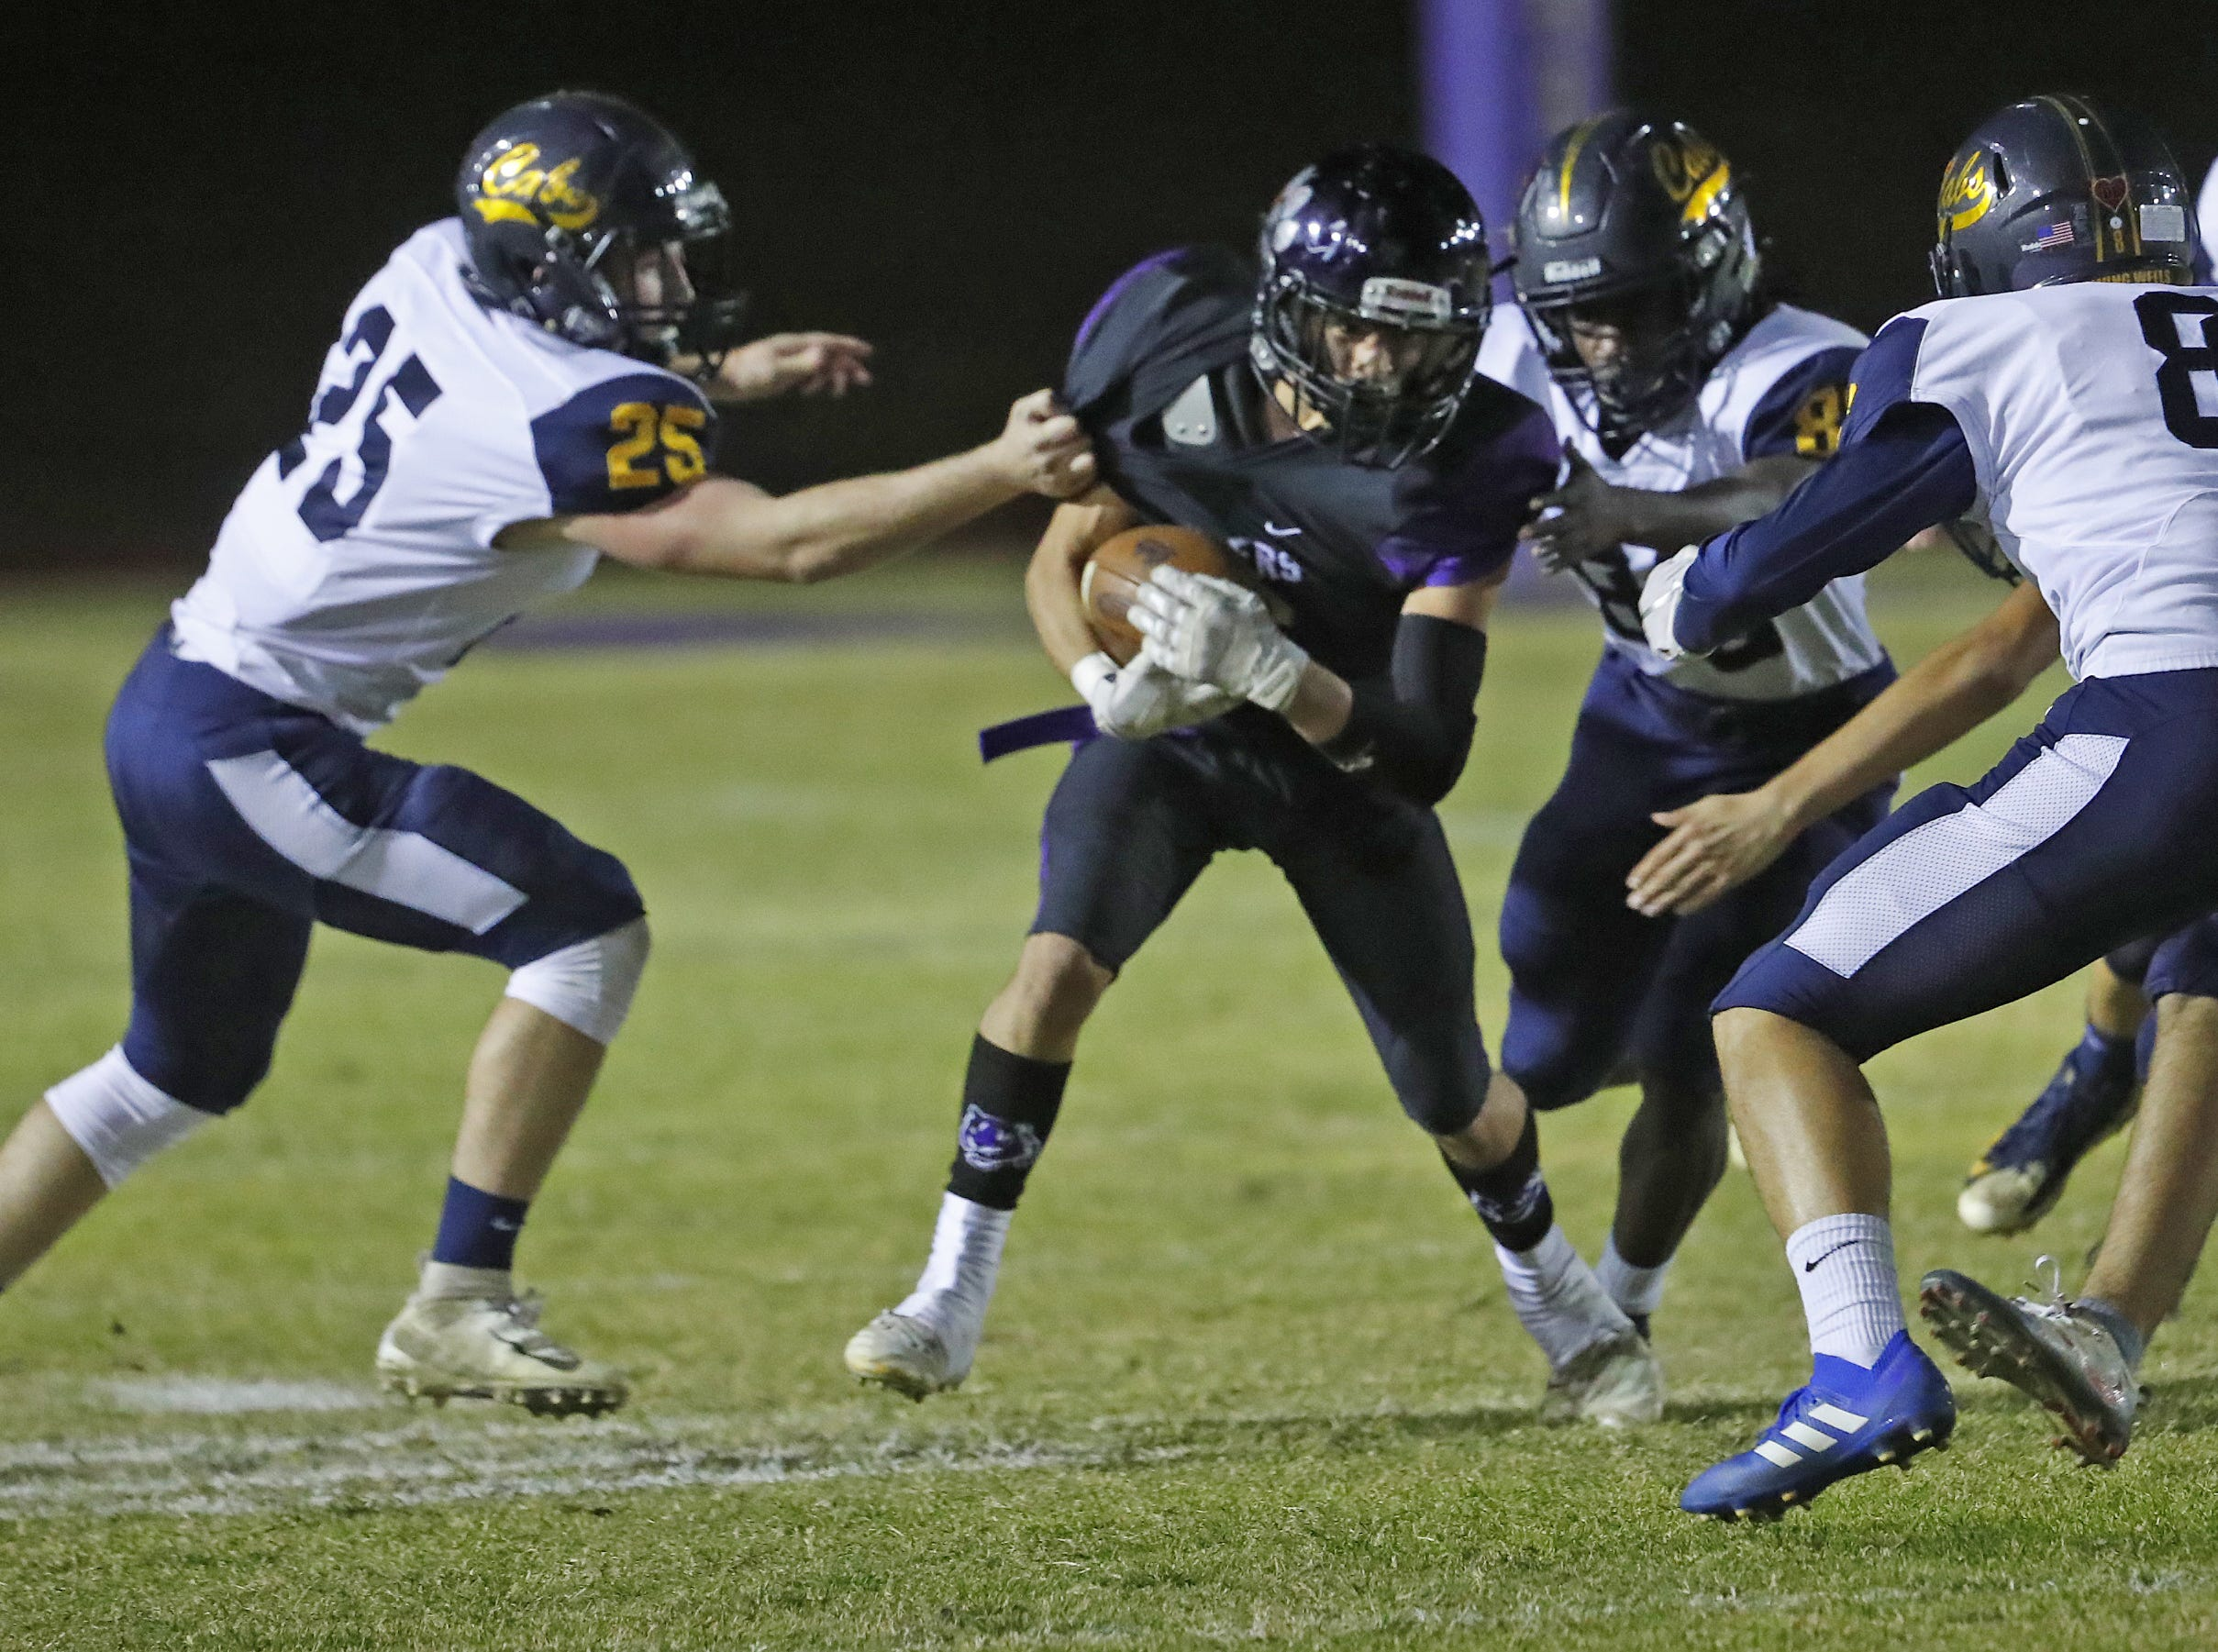 Millennium's Joseph Rosales (6) heads downfield against Flowing Wells' Blake Bishop (25) during the first round of the AIA State Football Playoffs at Millennium High School in Goodyear, Ariz. on November 2, 2018.